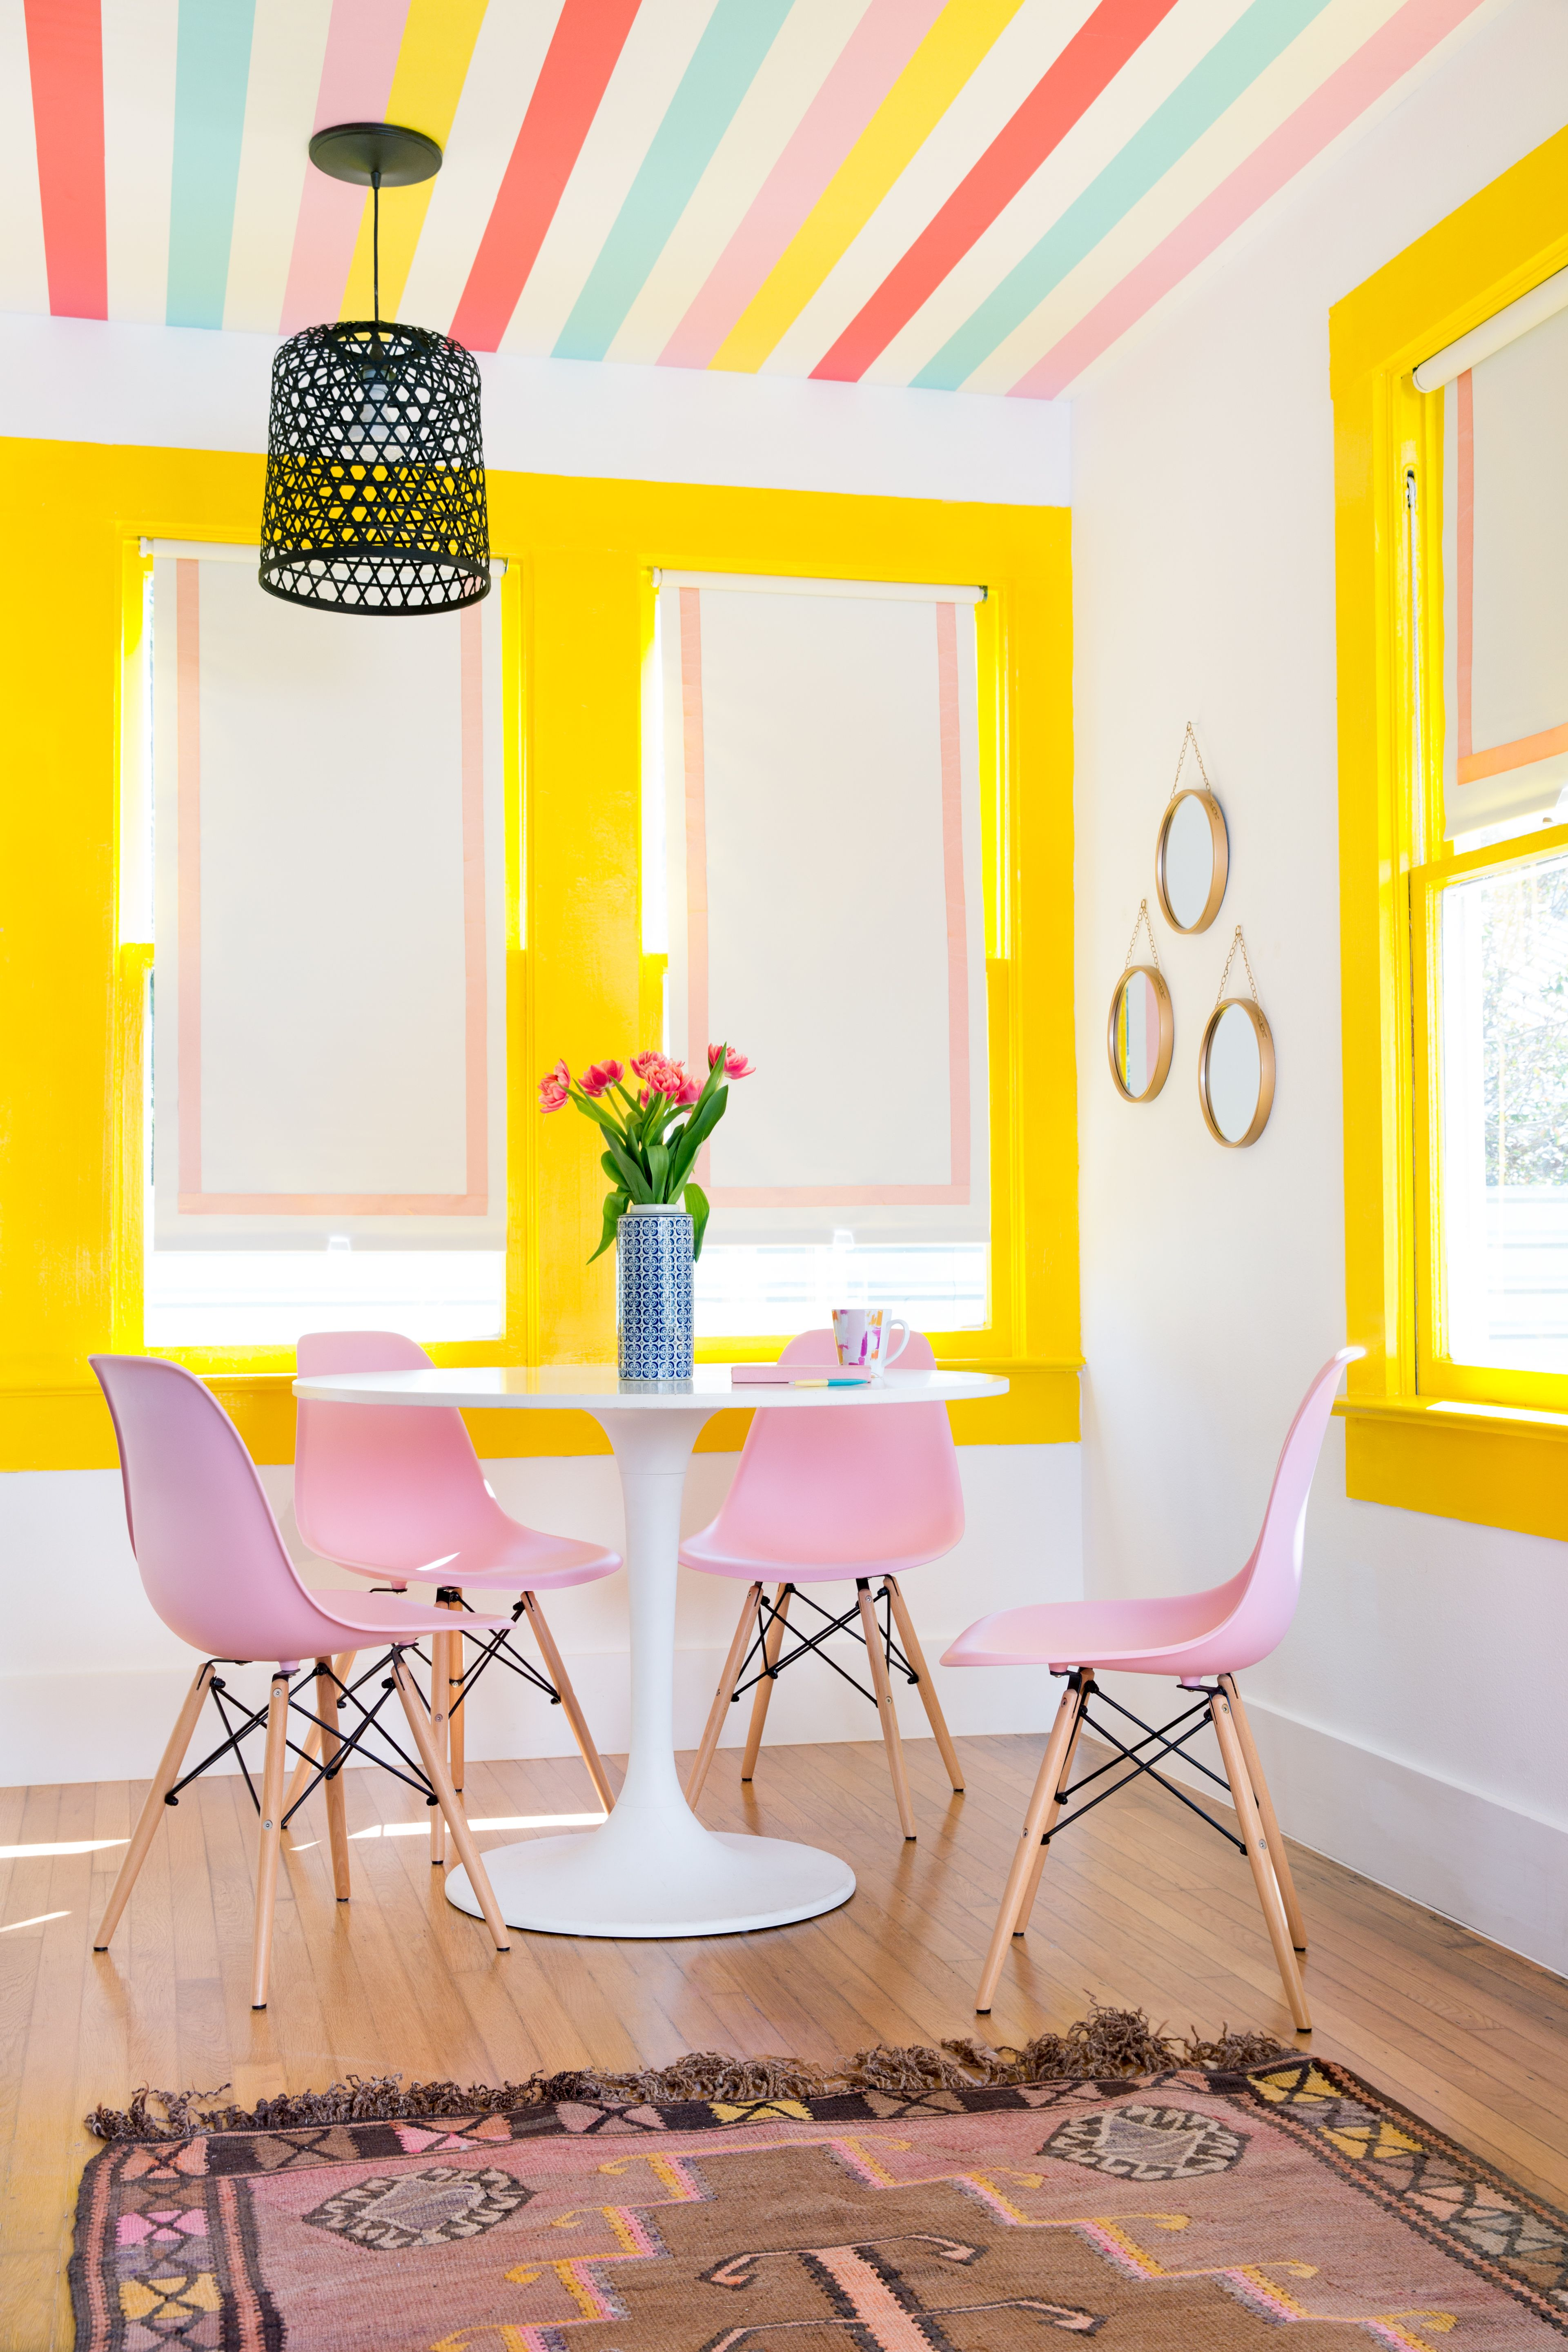 Cottage stripes wallpaper on the ceiling in this bright